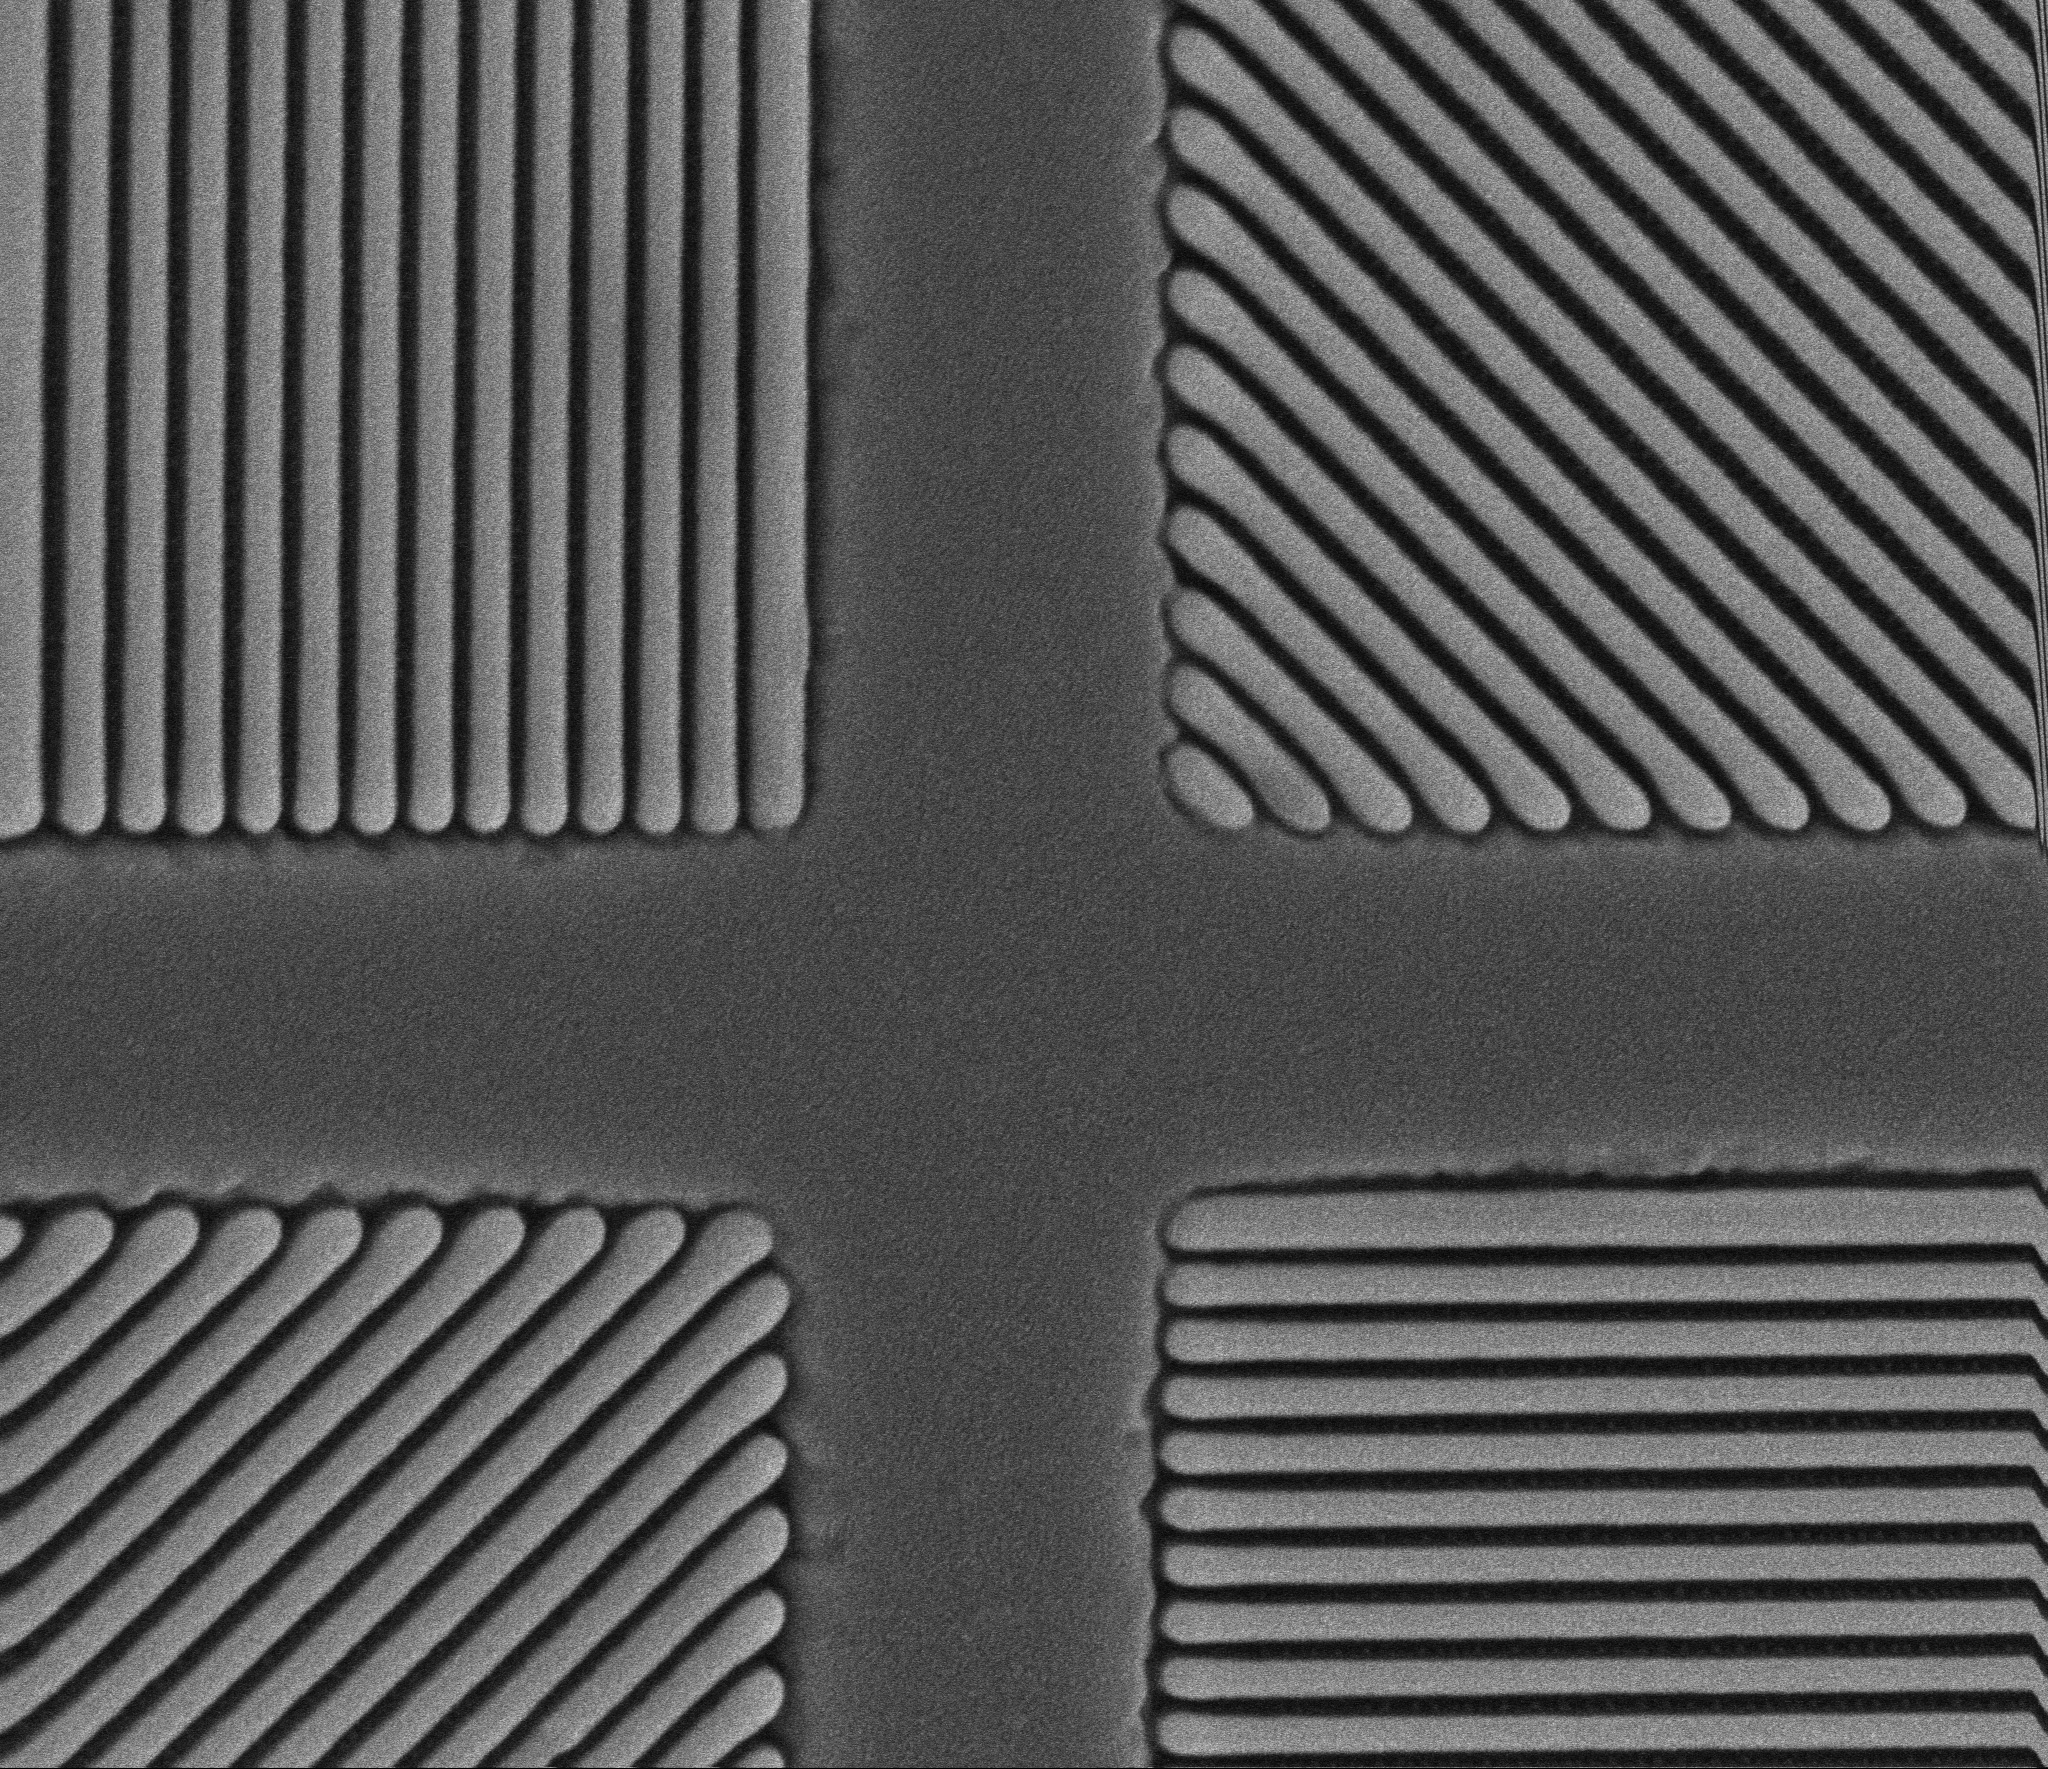 SEM image of a 4-state pixelated polarizer made with NIL